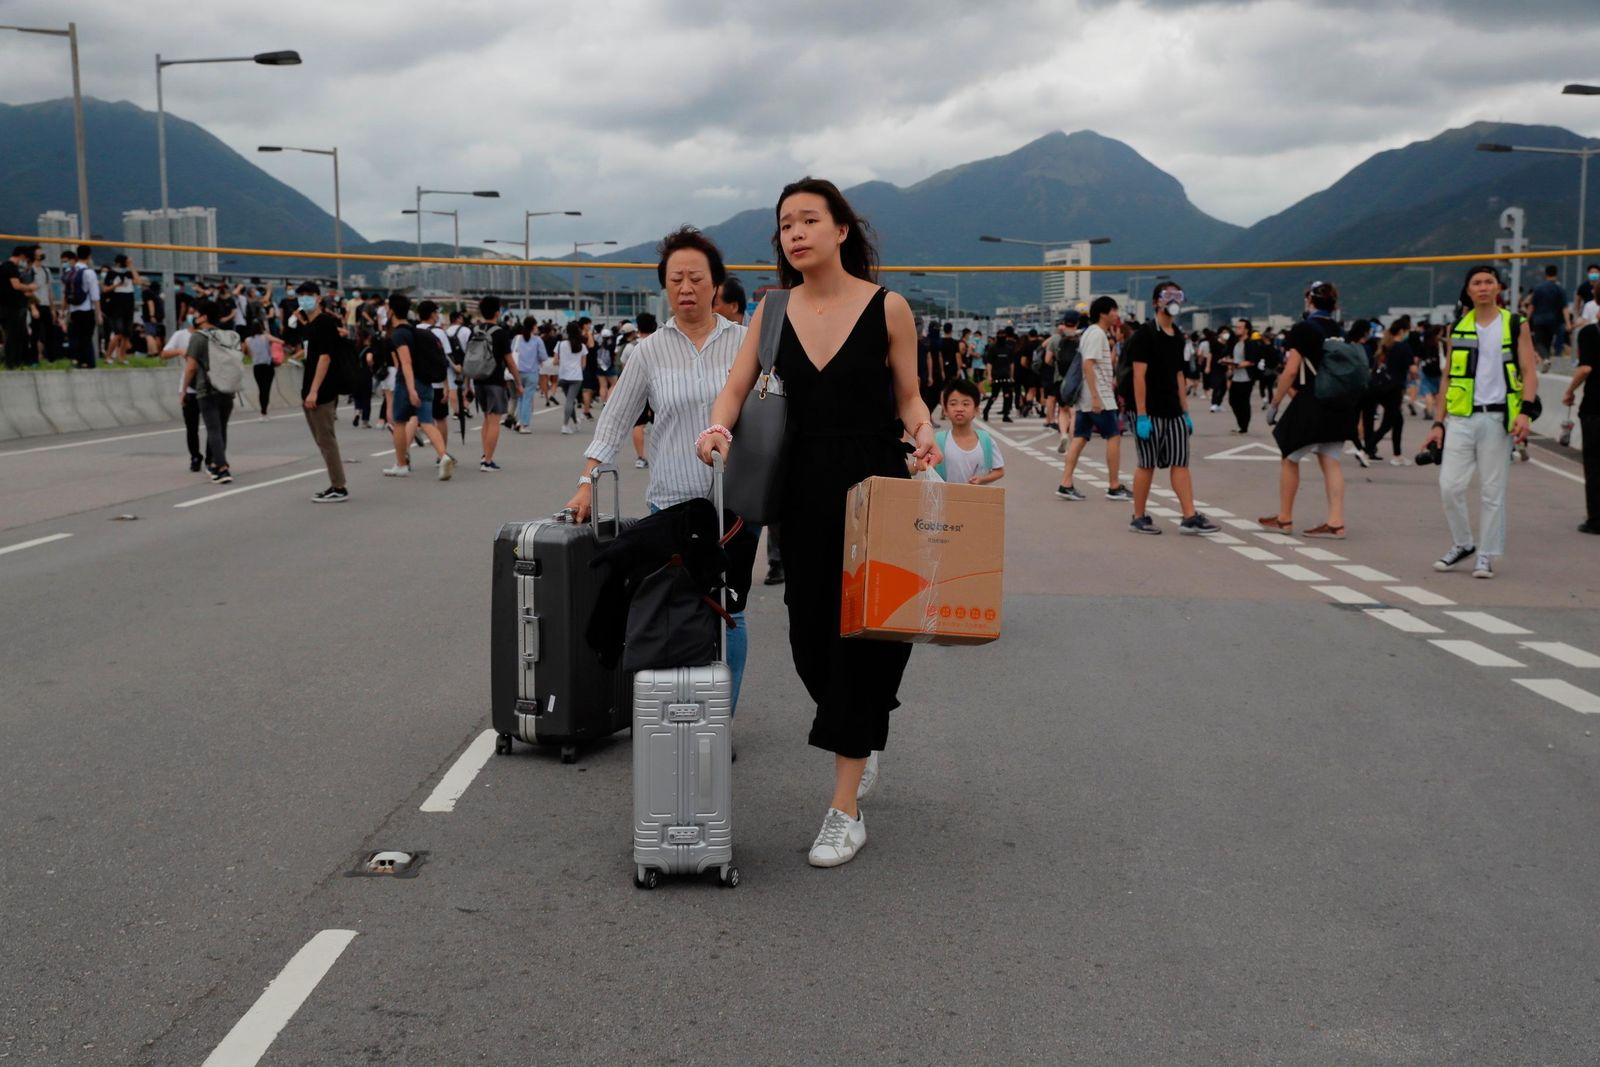 Passengers walk to airport as pro-democracy protestors blocked a road outside the airport in Hong Kong, Sunday, Sept.1, 2019.{ } (AP Photo/Kin Cheung)